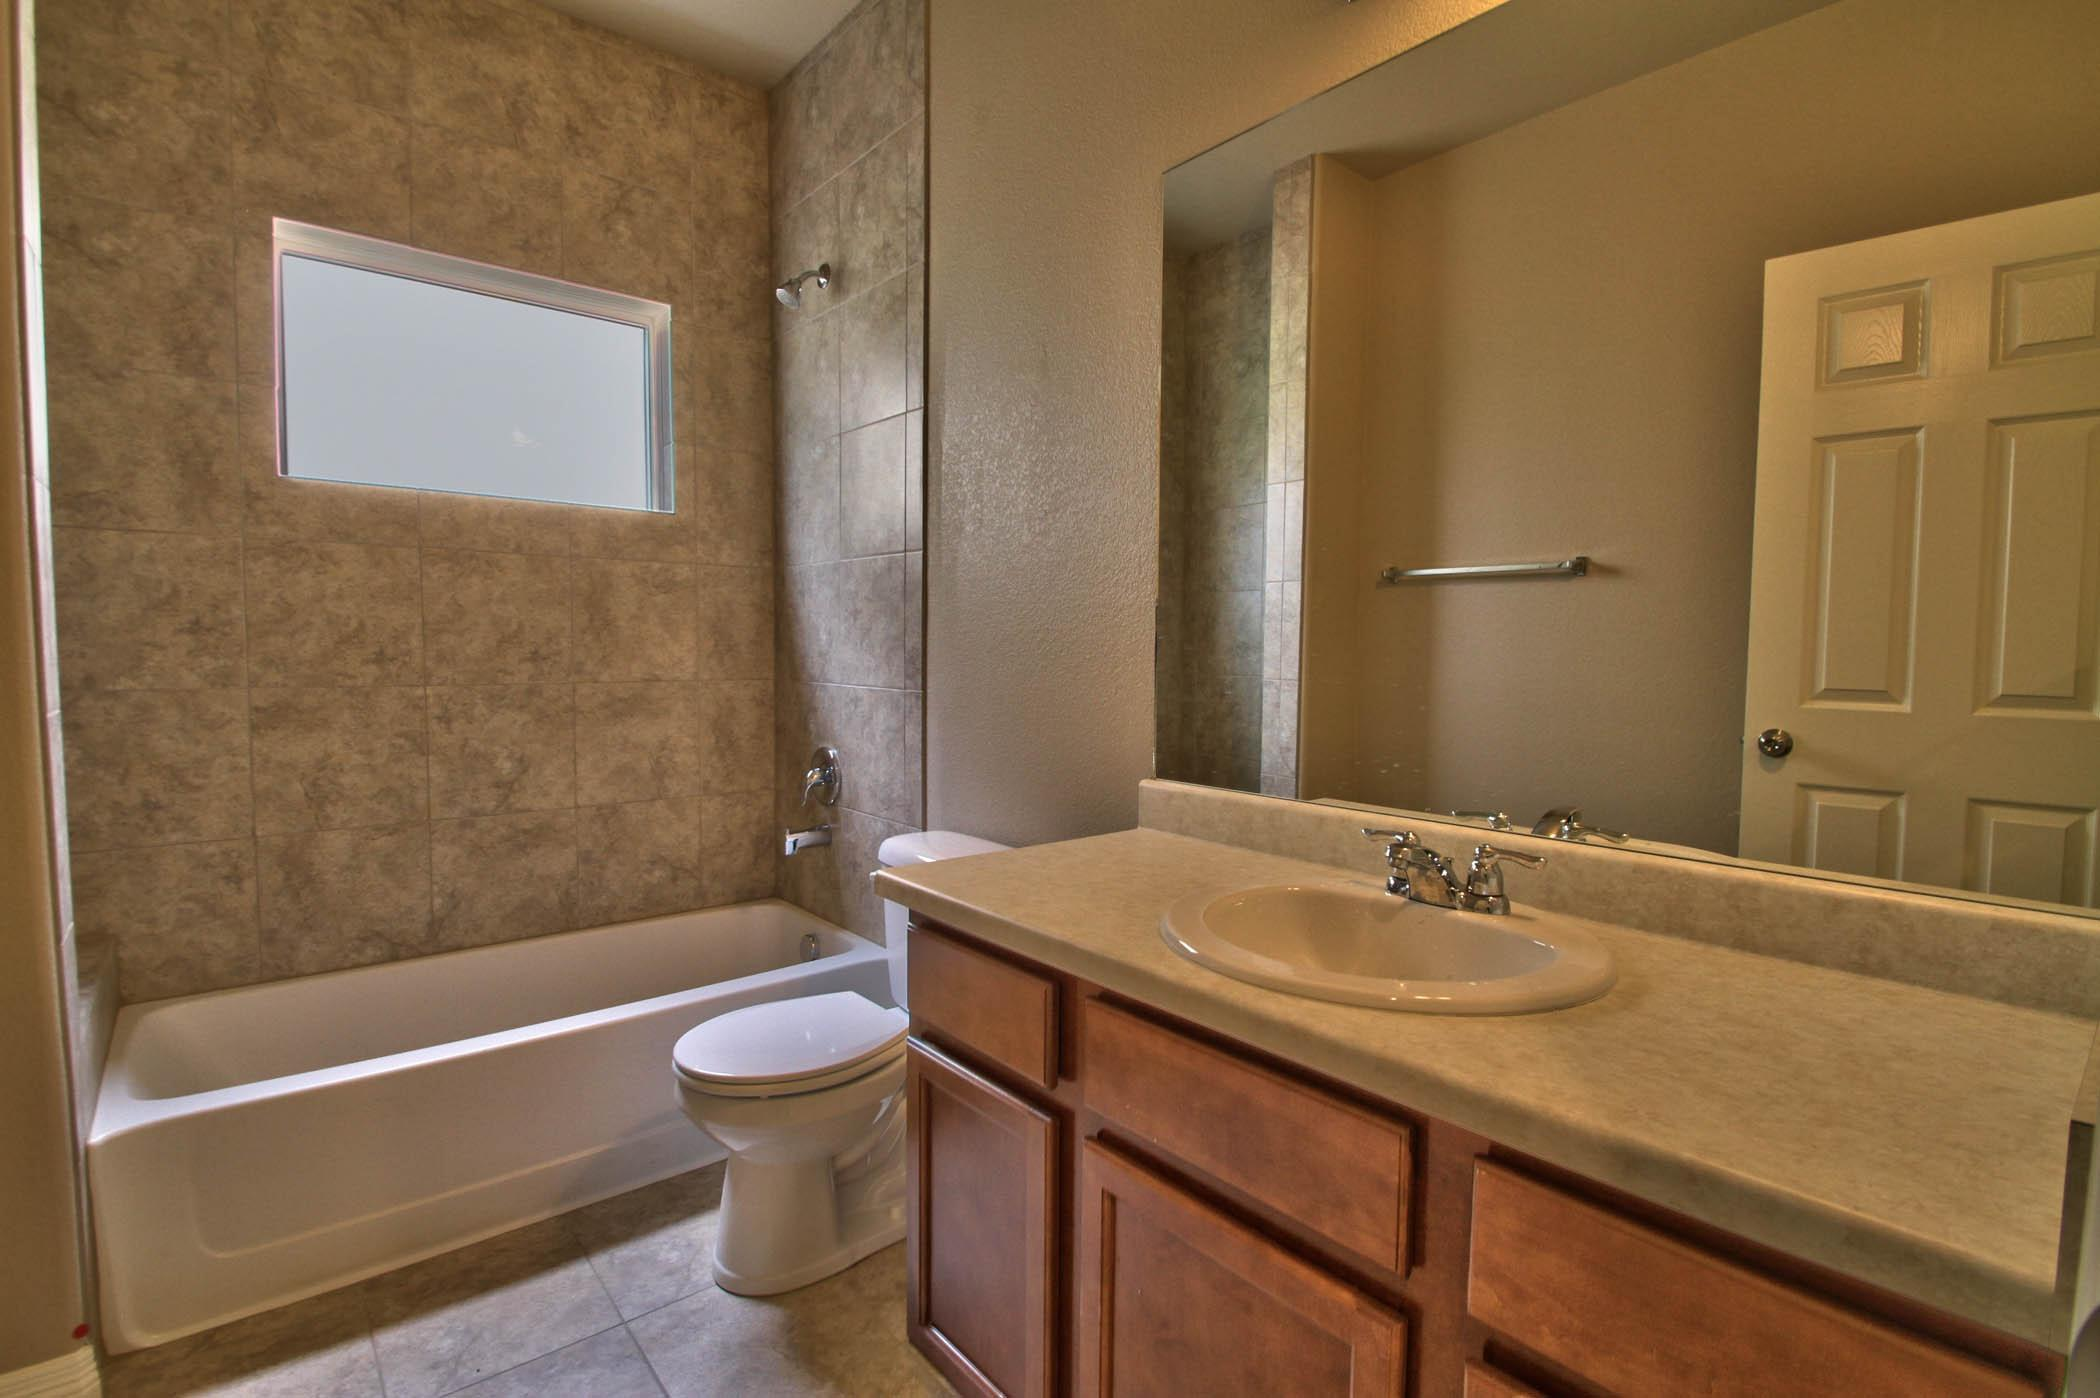 Bathroom featured in the Cutler (Finished Basement) By Reunion Homes in Colorado Springs, CO